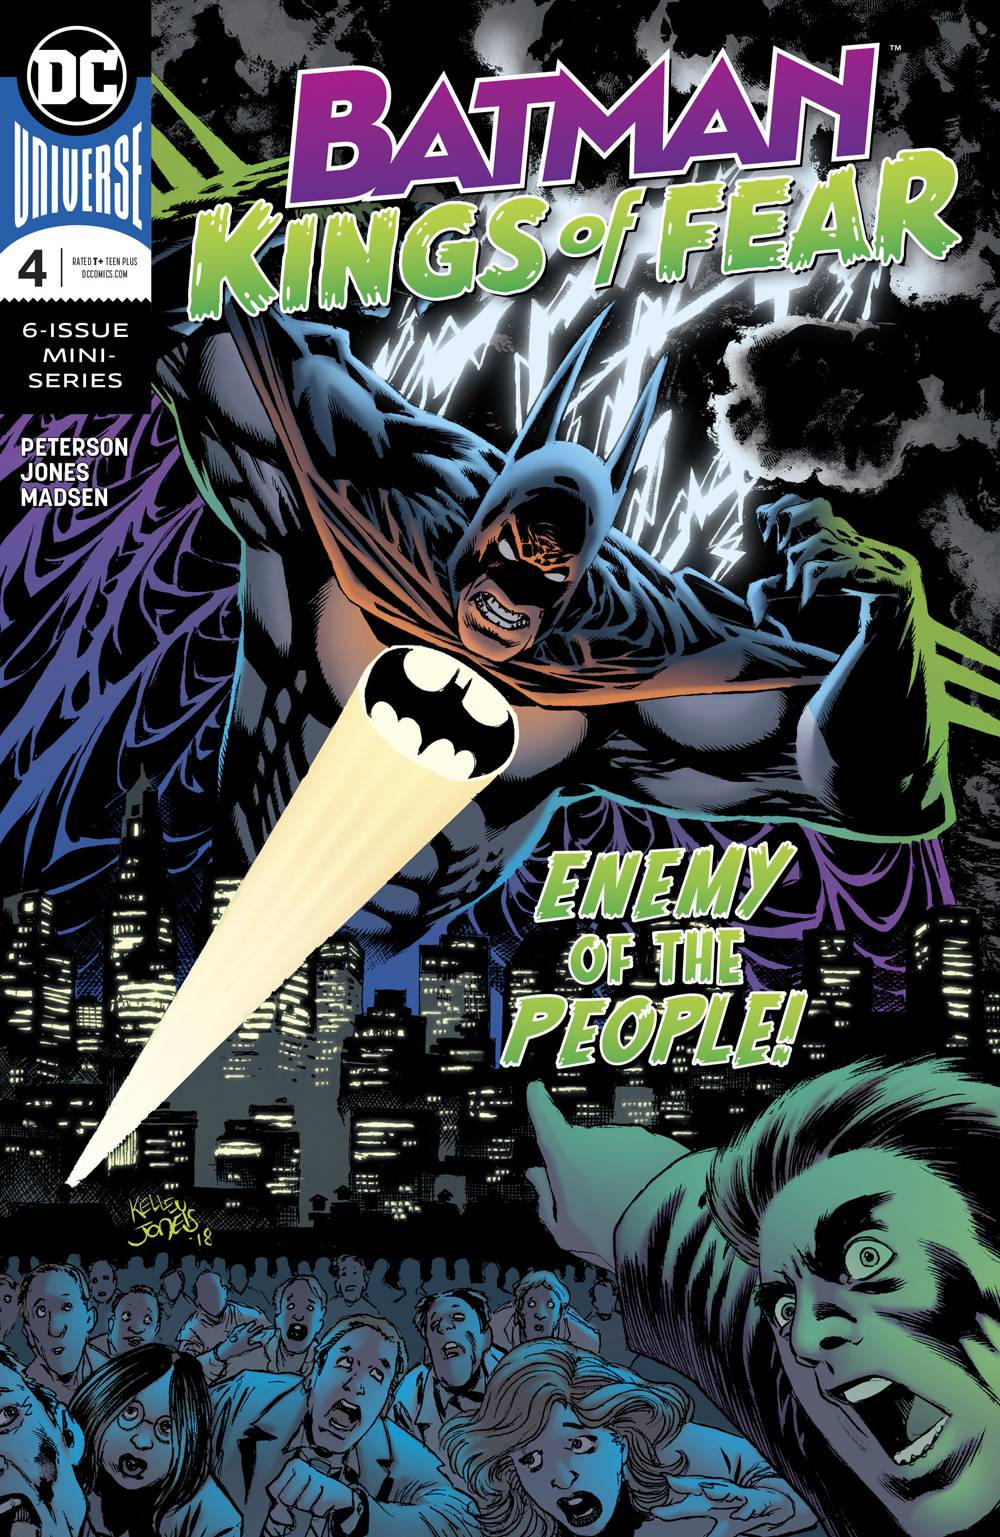 BATMAN KINGS OF FEAR 4 of 6.jpg